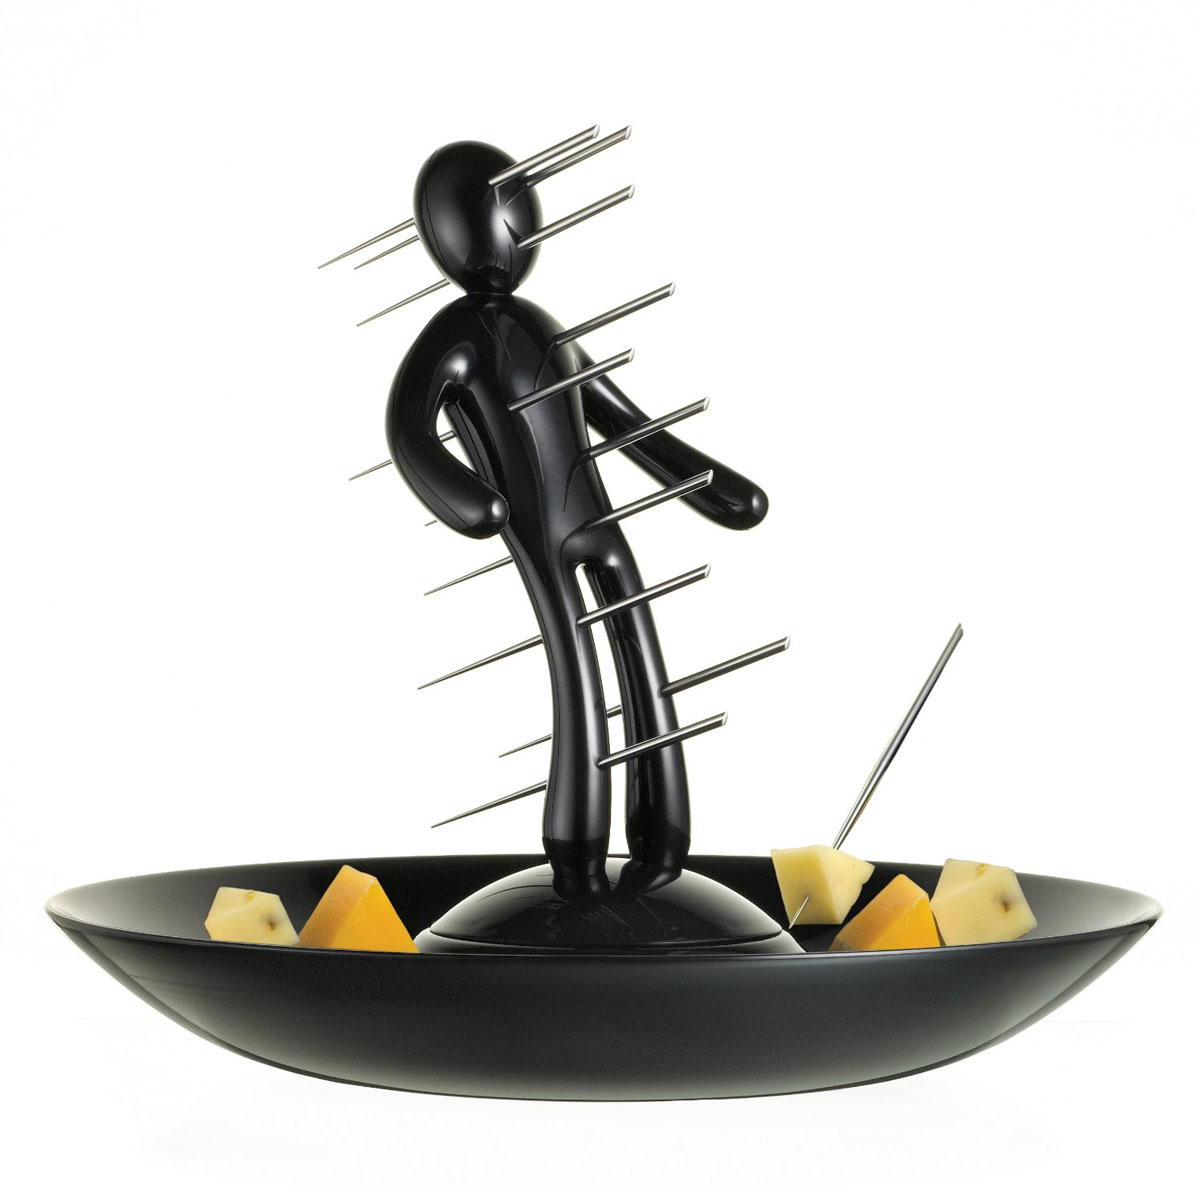 Ex-skewer-set-voodoo-appetizer-serving-tray-1